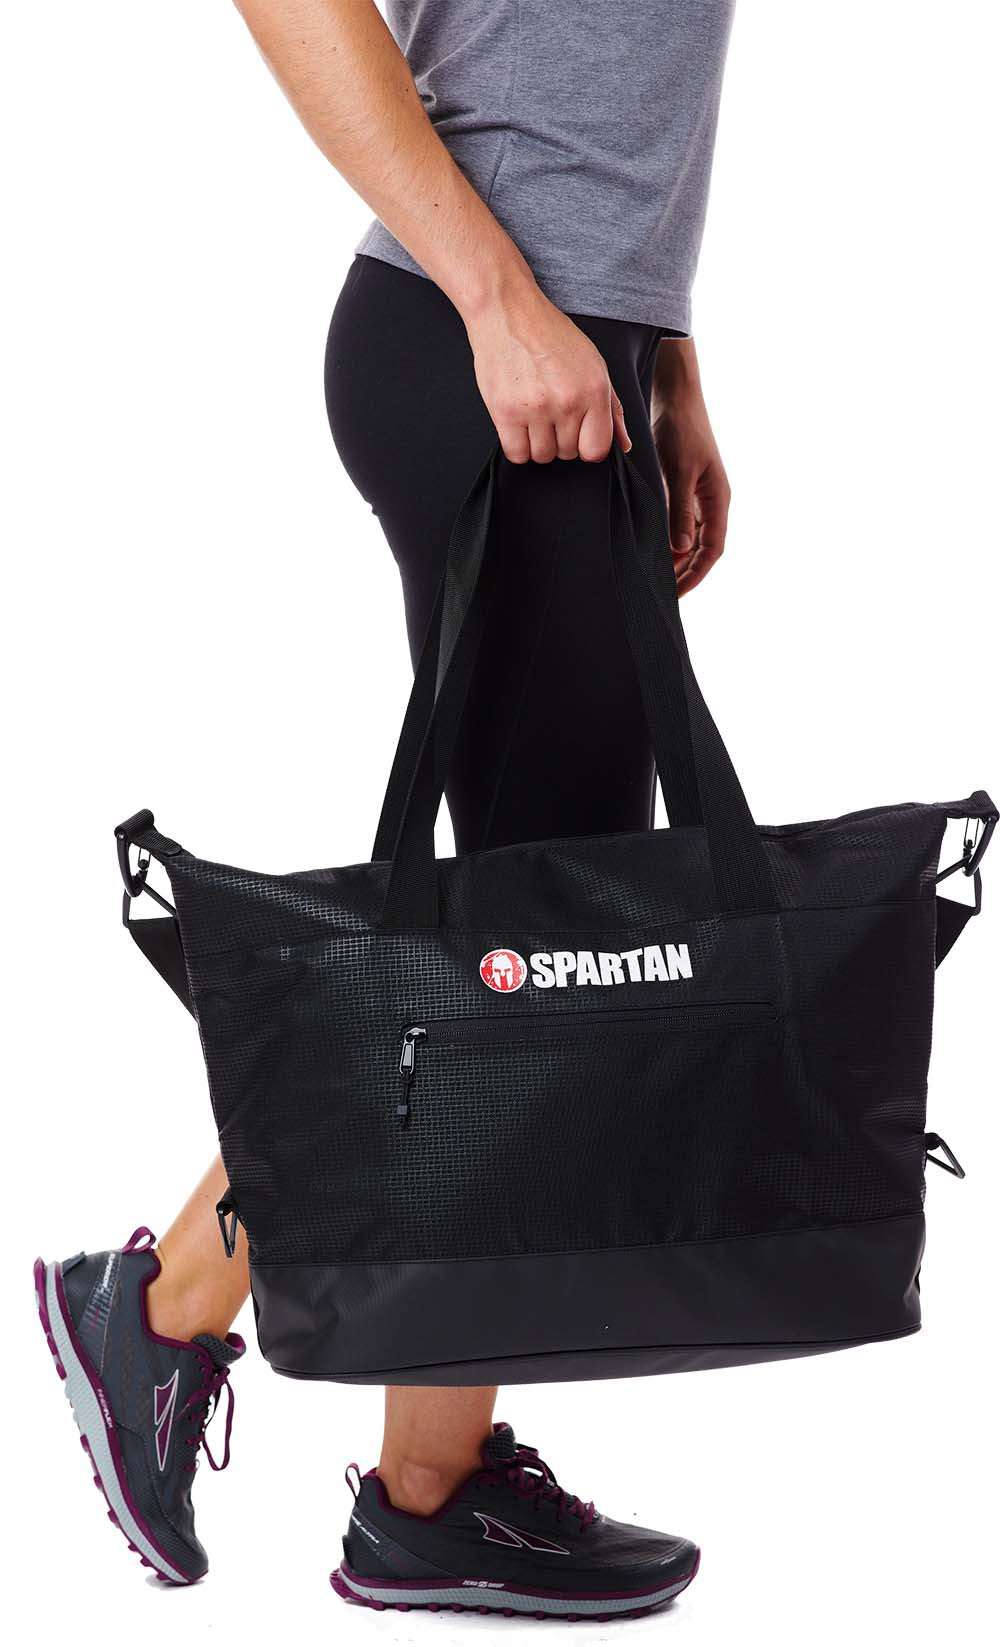 SPARTAN by CRAFT Transit Studio Bag